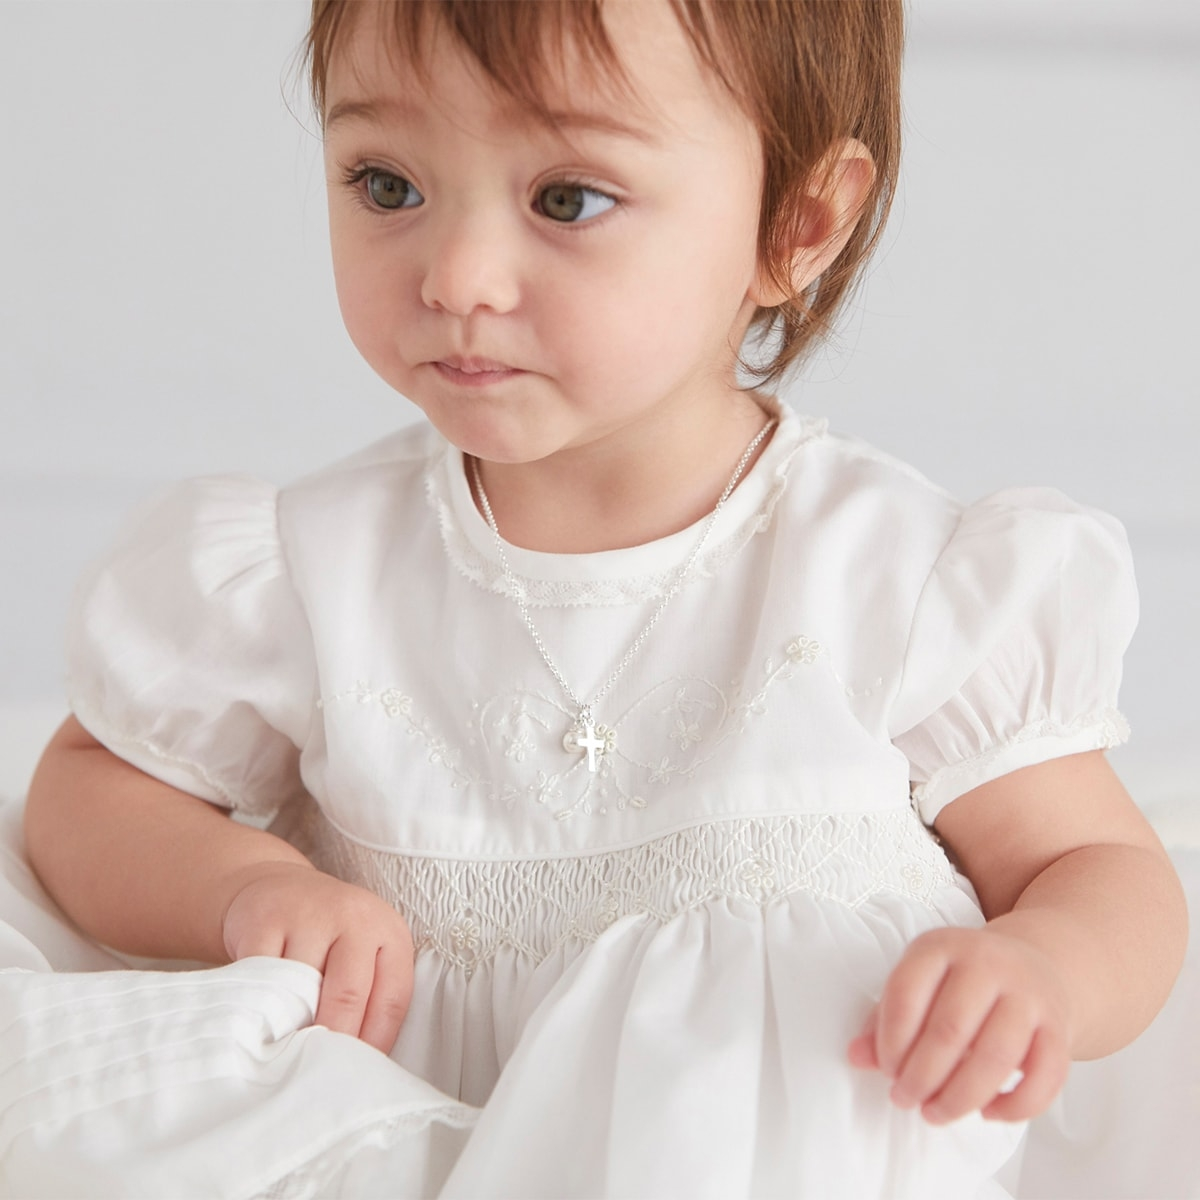 Baby's Christening Cross Necklace